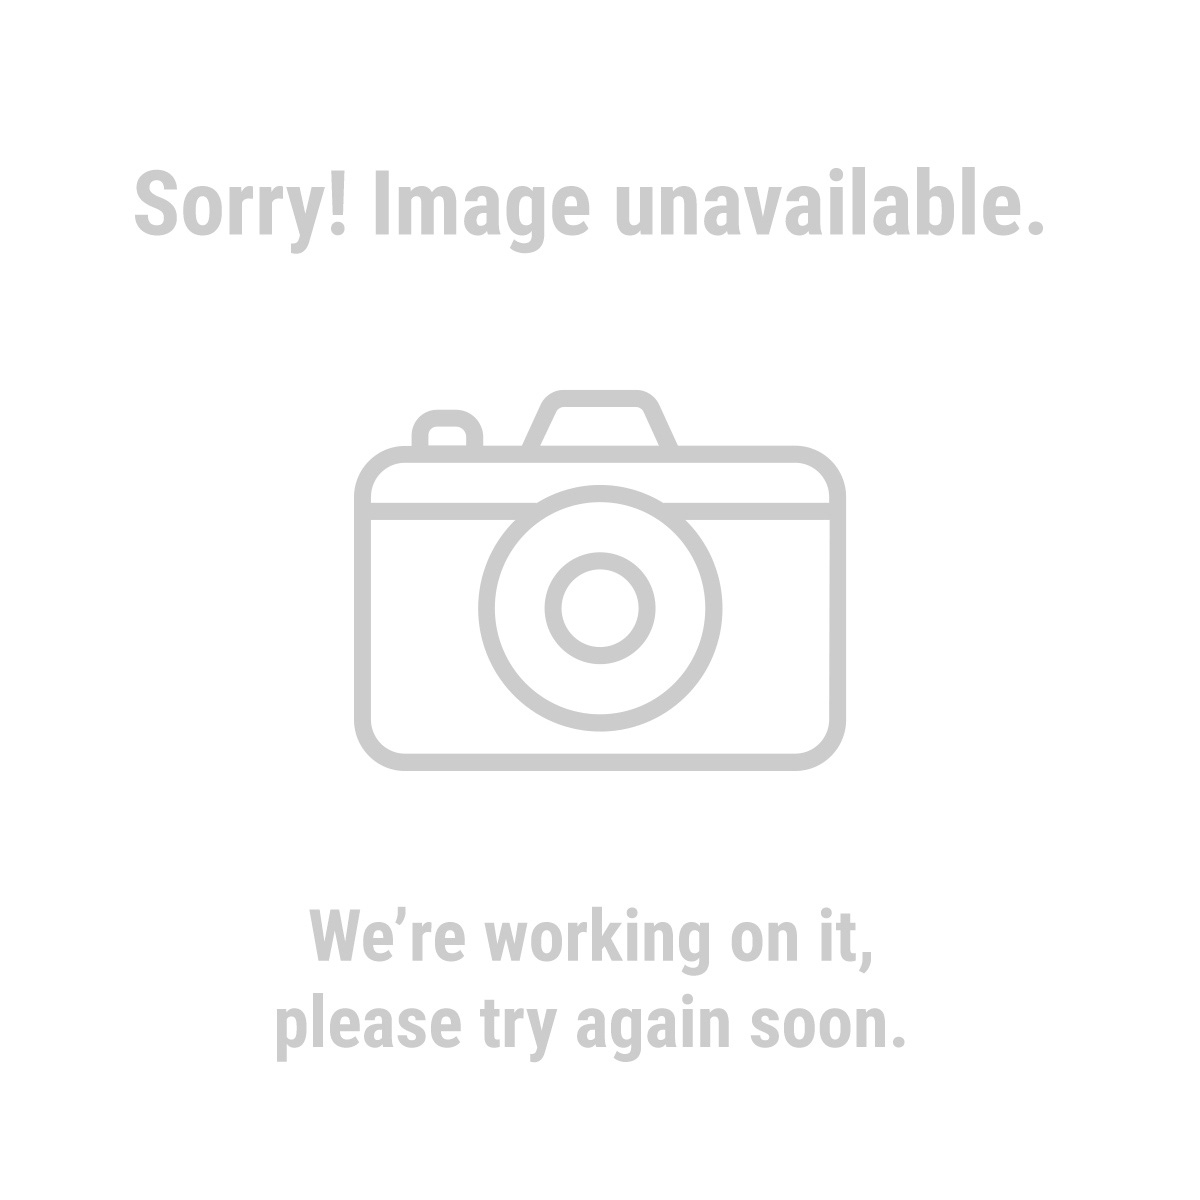 Haul Master Automotive 60397 1000 Lb. Steel Loading Ramps, Set of Two